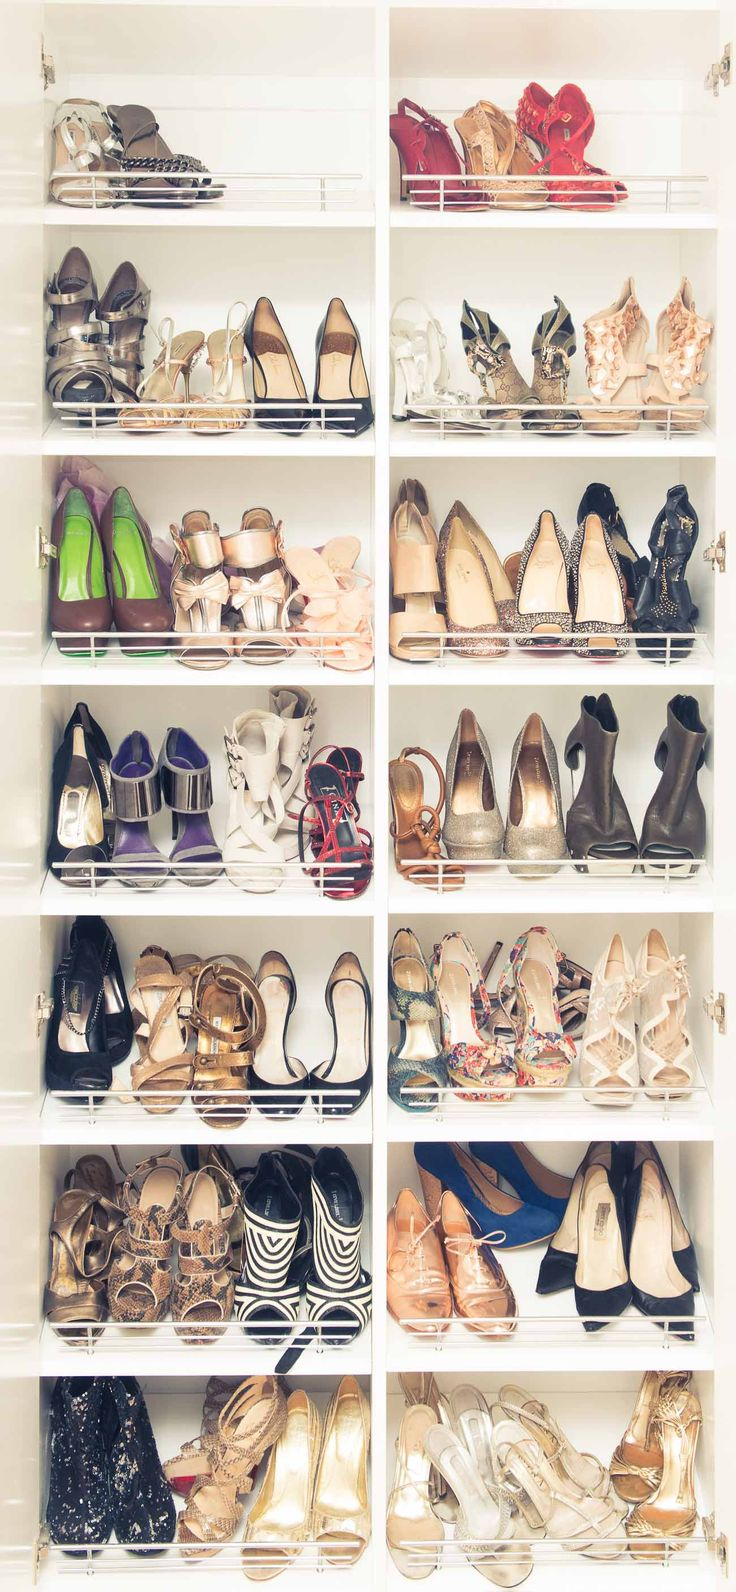 Stacks on stacks on stacks. www.thecoveteur.com/cat_deeley